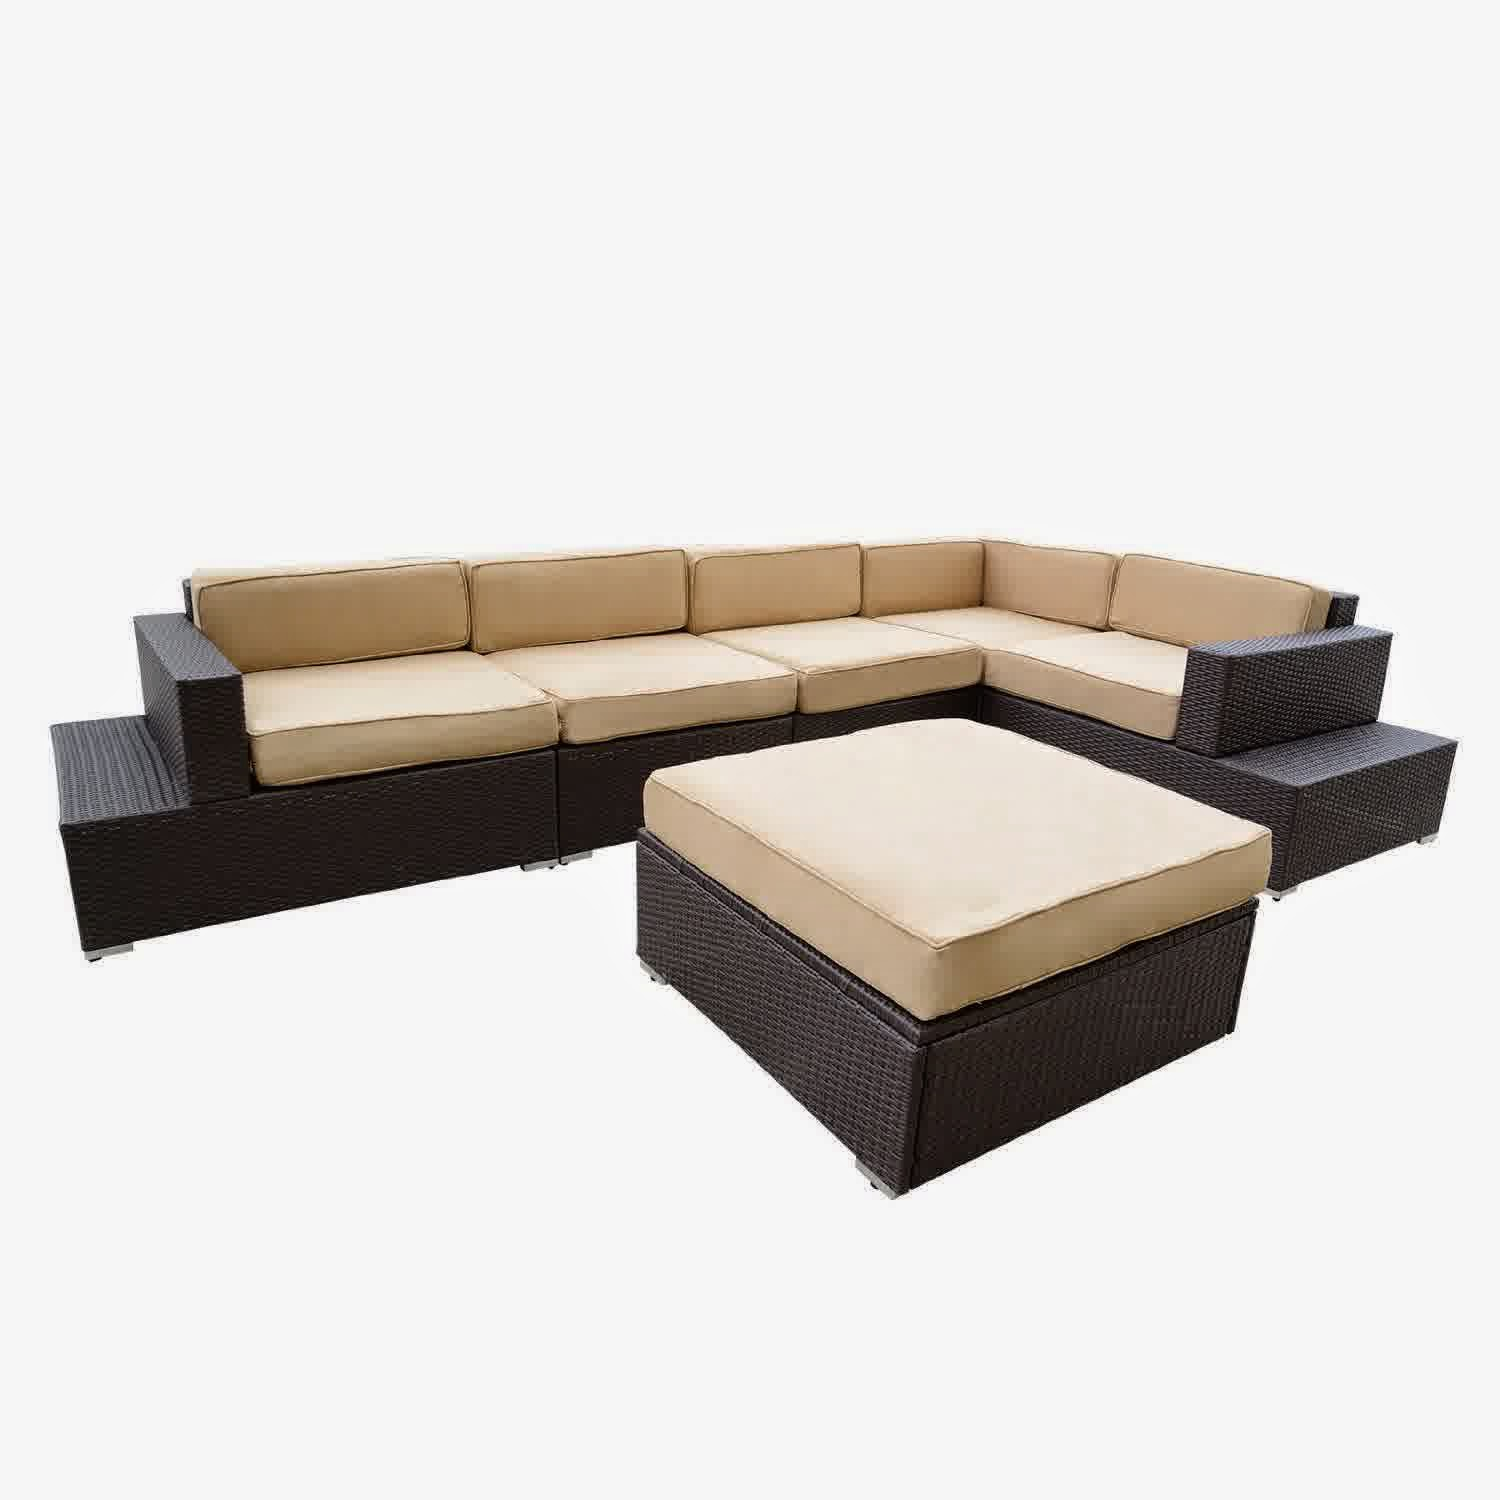 Big Sale Discount 50% Outdoor Patio Rattan Sofa Wicker